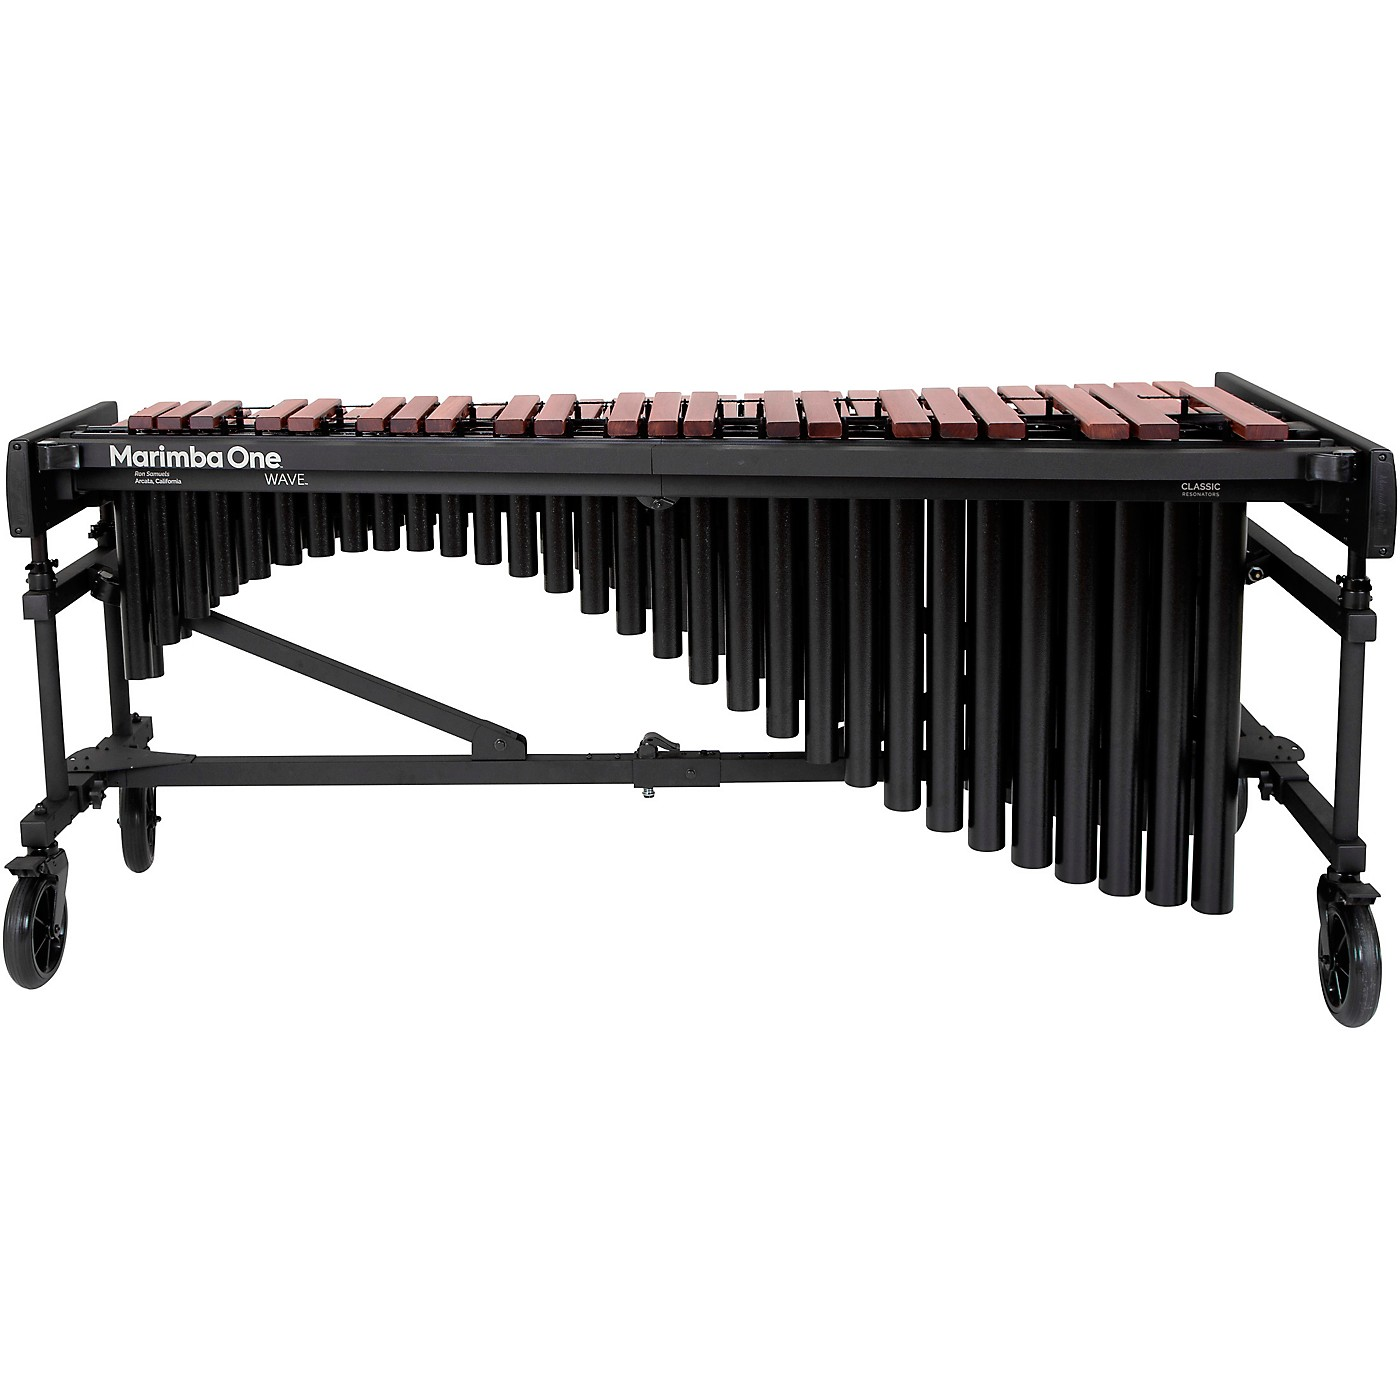 Marimba One Wave #9632 A442 4.3 Octave Marimba with Enhanced Keyboard and Classic Resonators thumbnail